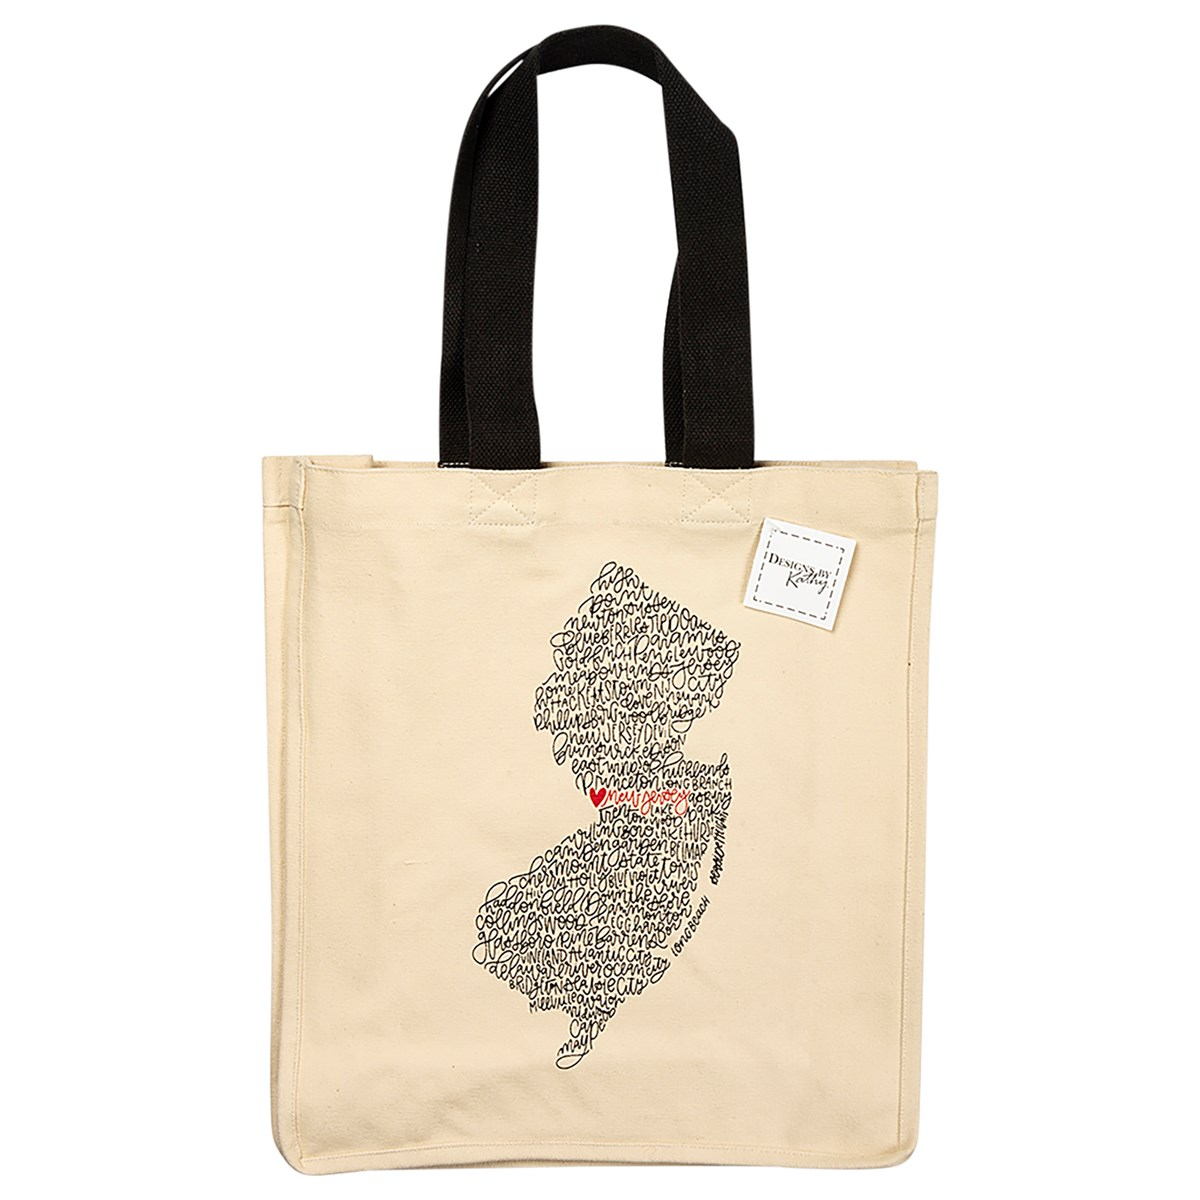 "Tote - New Jersey - 14"" x 15.50"" - Cotton"